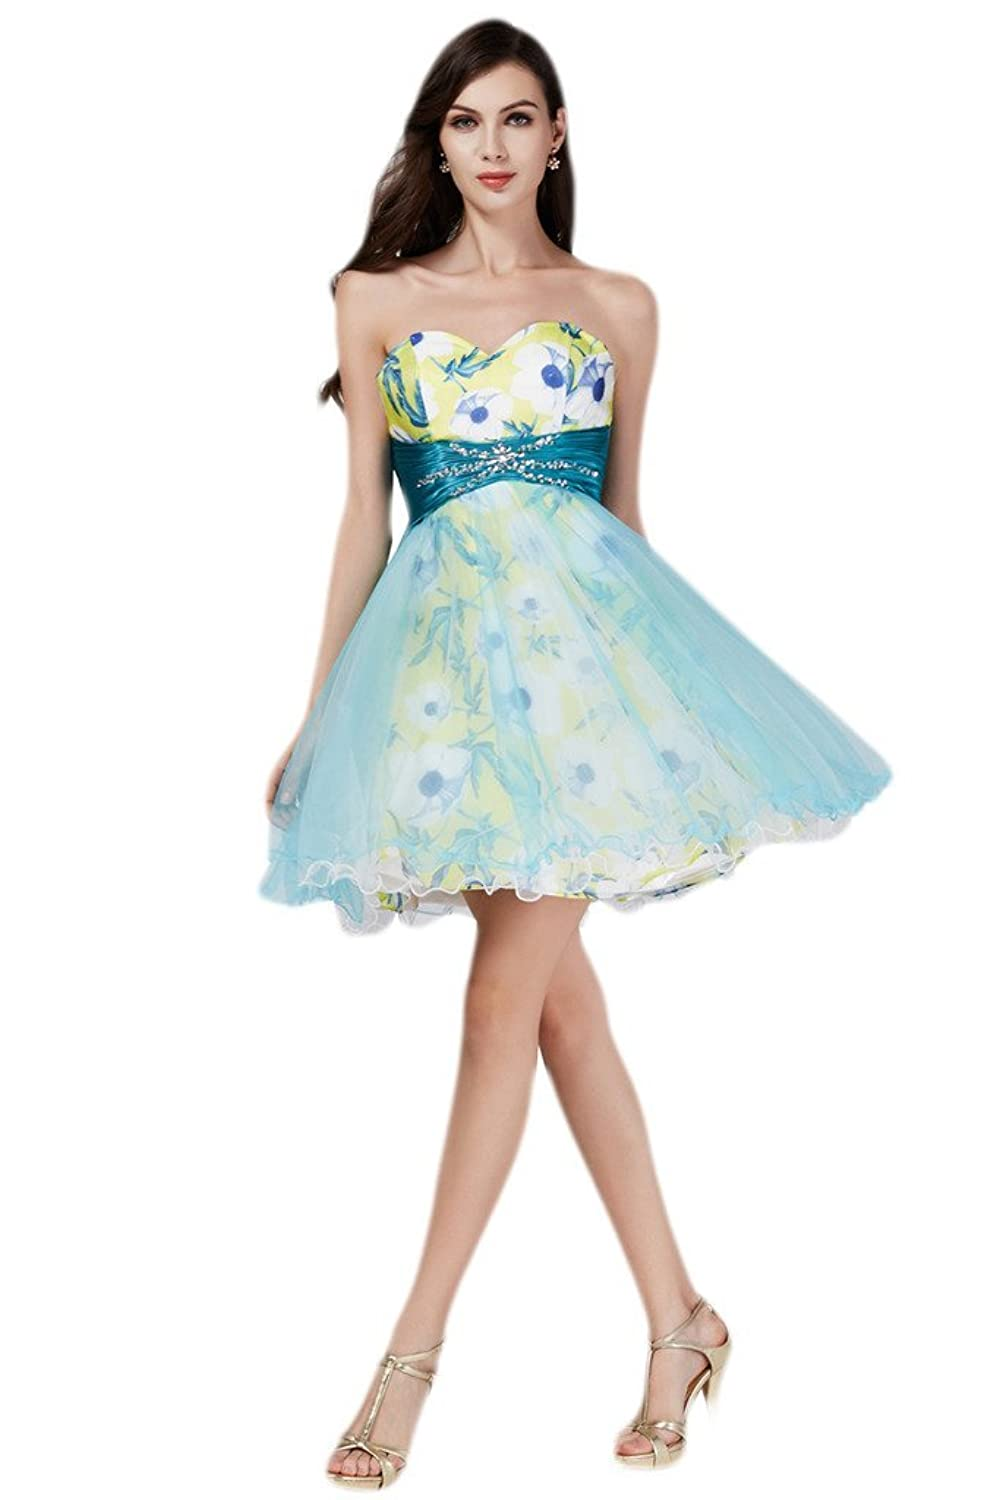 Audrey Bride Sweetheart Short Cocktail Dresses for Girls Prom Ball Party Dress